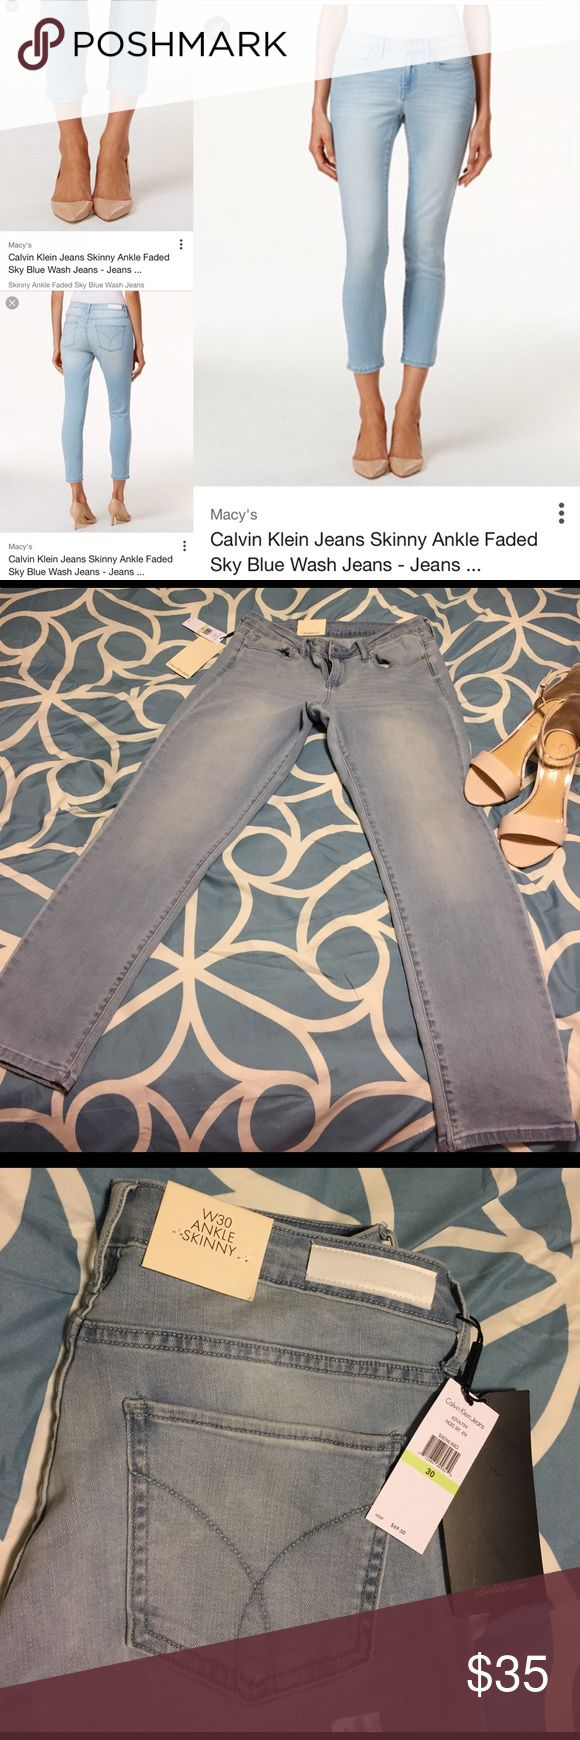 🔥SALE🔥NWT Calvin Klein ankle skinny jeans Beautiful jeans! 💖 Color: faded sky ✨ Calvin Klein Jeans Jeans Ankle & Cropped